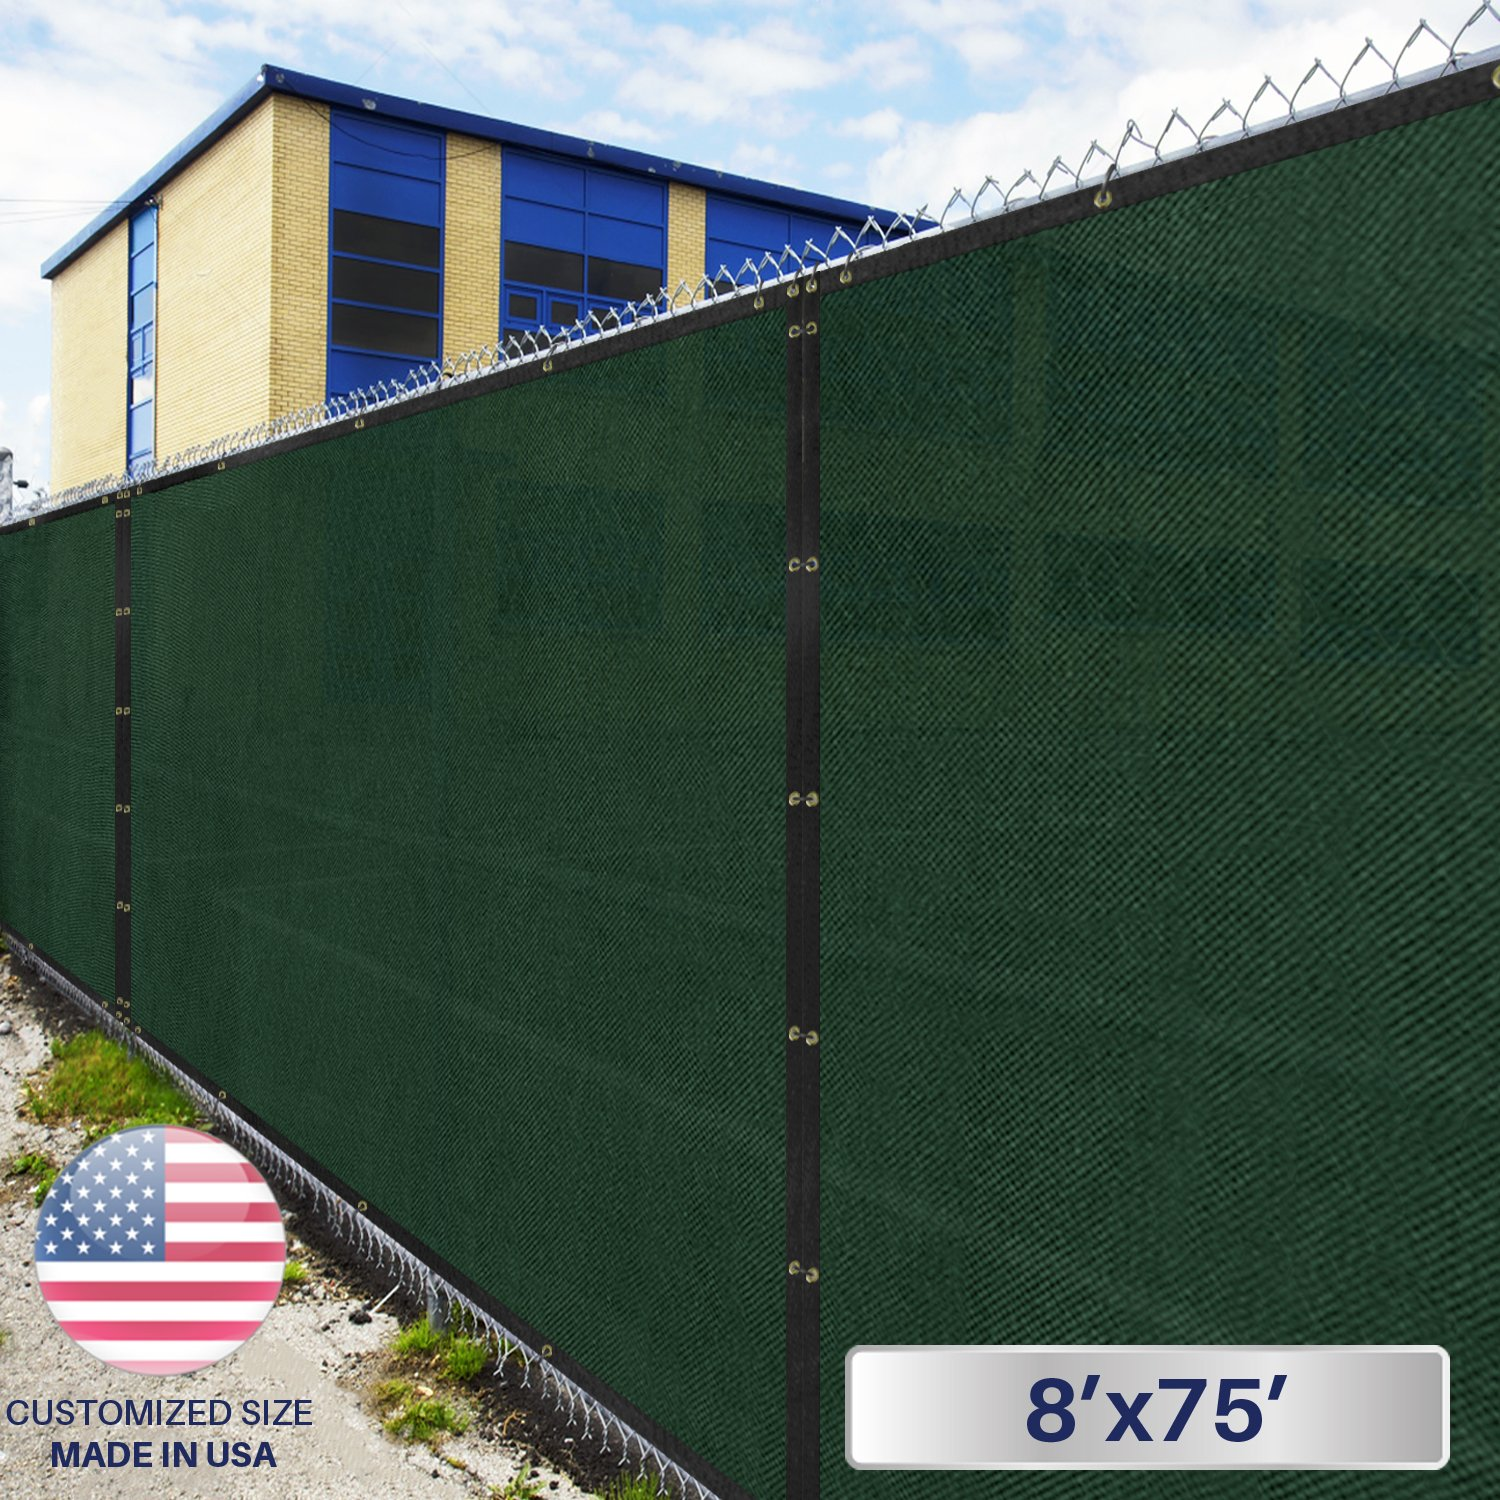 8' x 75' Privacy Fence Screen in Green with Brass Grommet 85% Blockage Windscreen Outdoor Mesh Fencing Cover Netting 150GSM Fabric - Custom Size by Windscreen4less